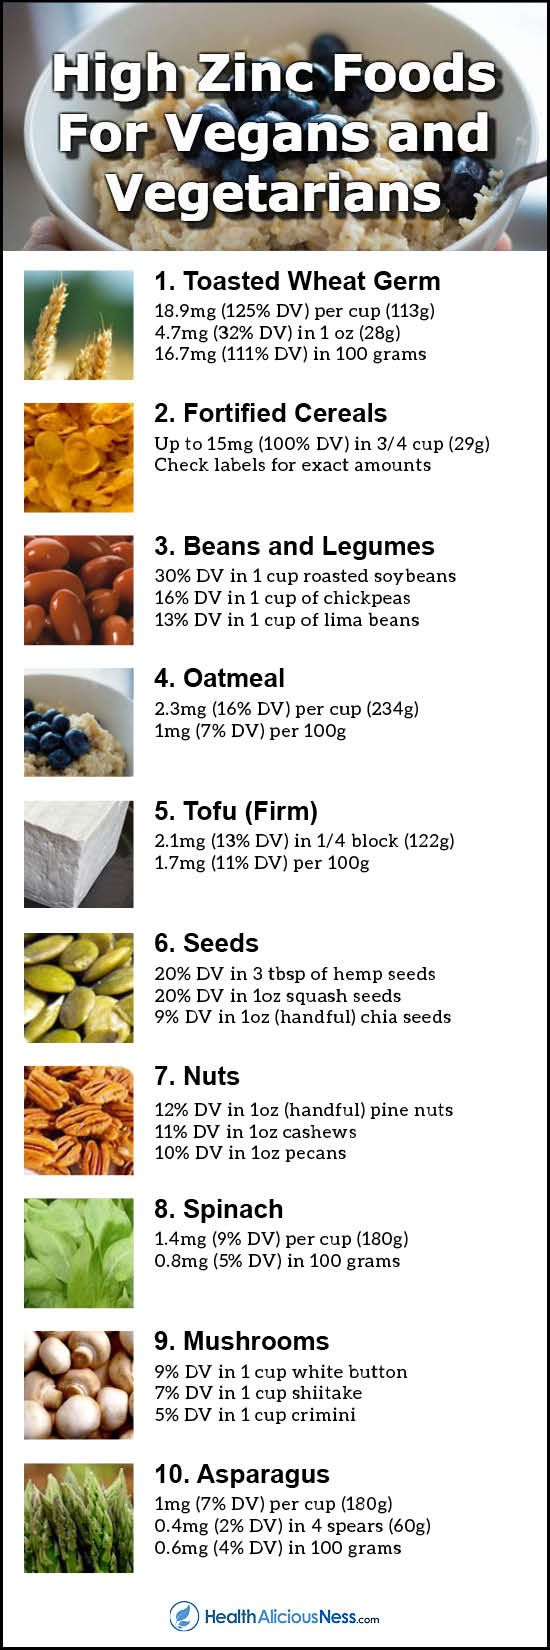 23 High Zinc Foods for Vegans and Vegetarians Foods with